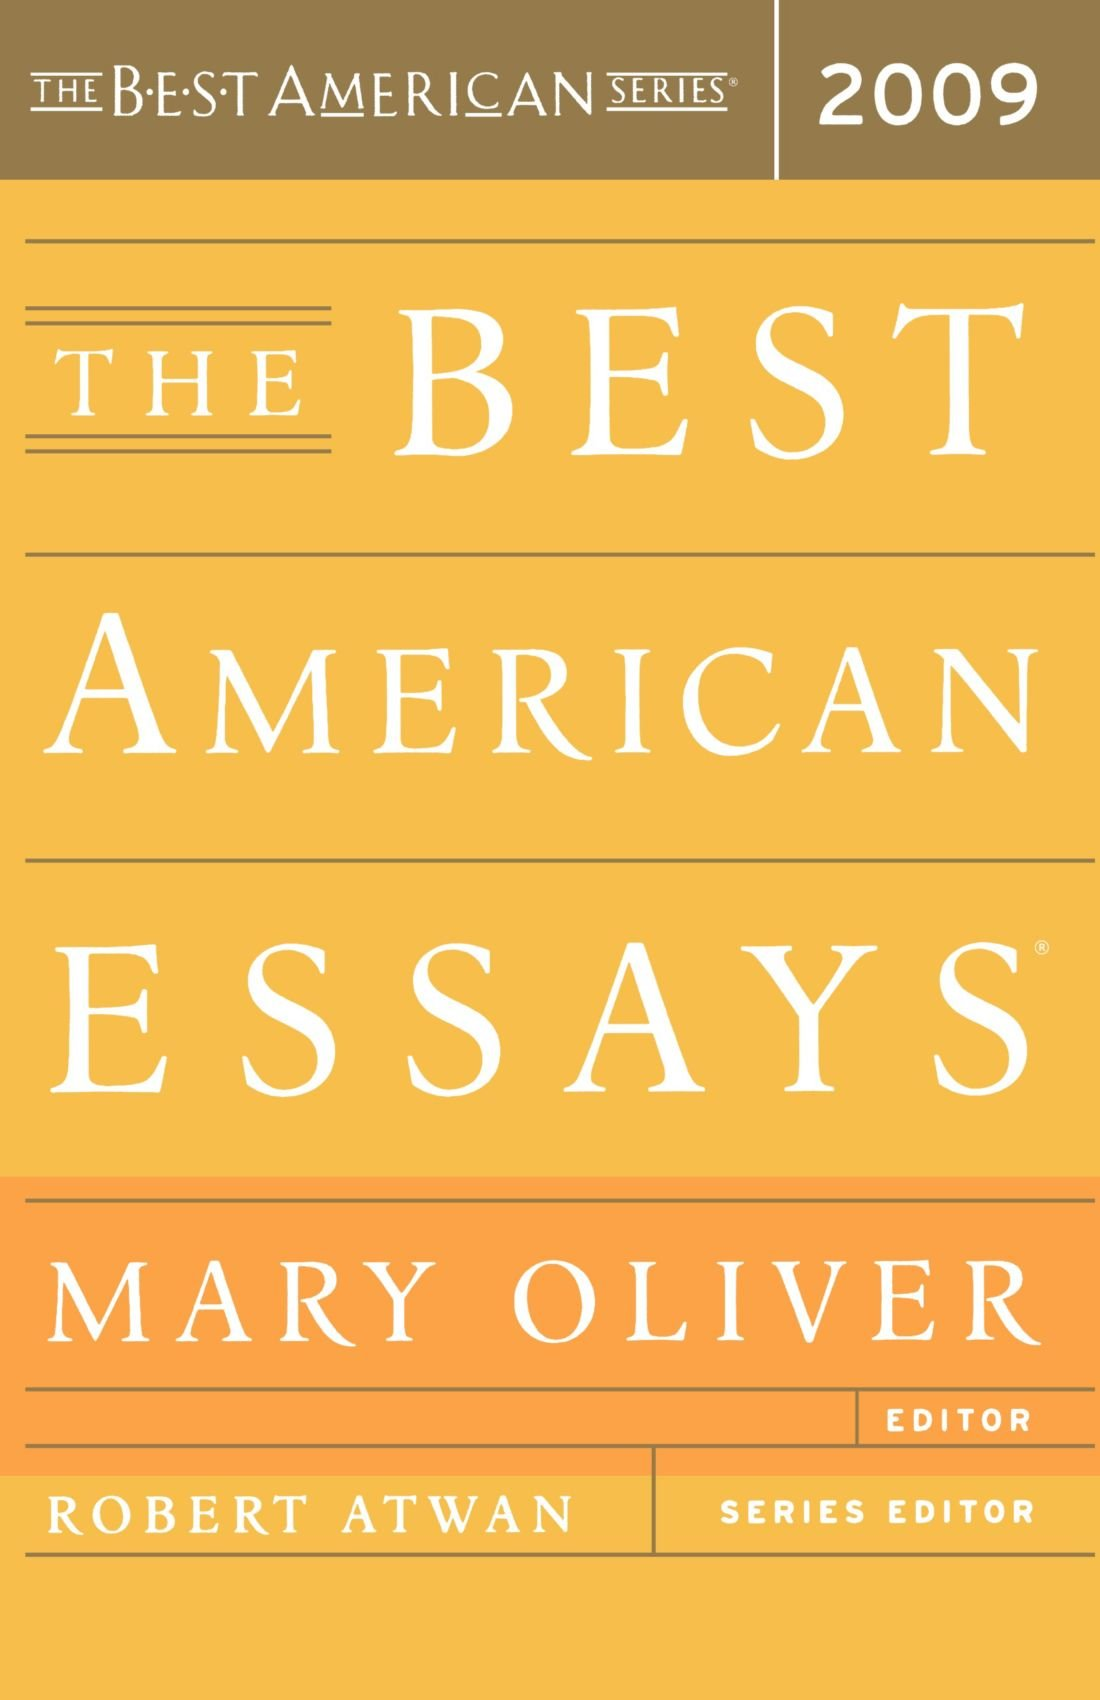 com the best american essays the best american  com the best american essays 2009 the best american series ® 9780618982721 mary oliver robert atwan books